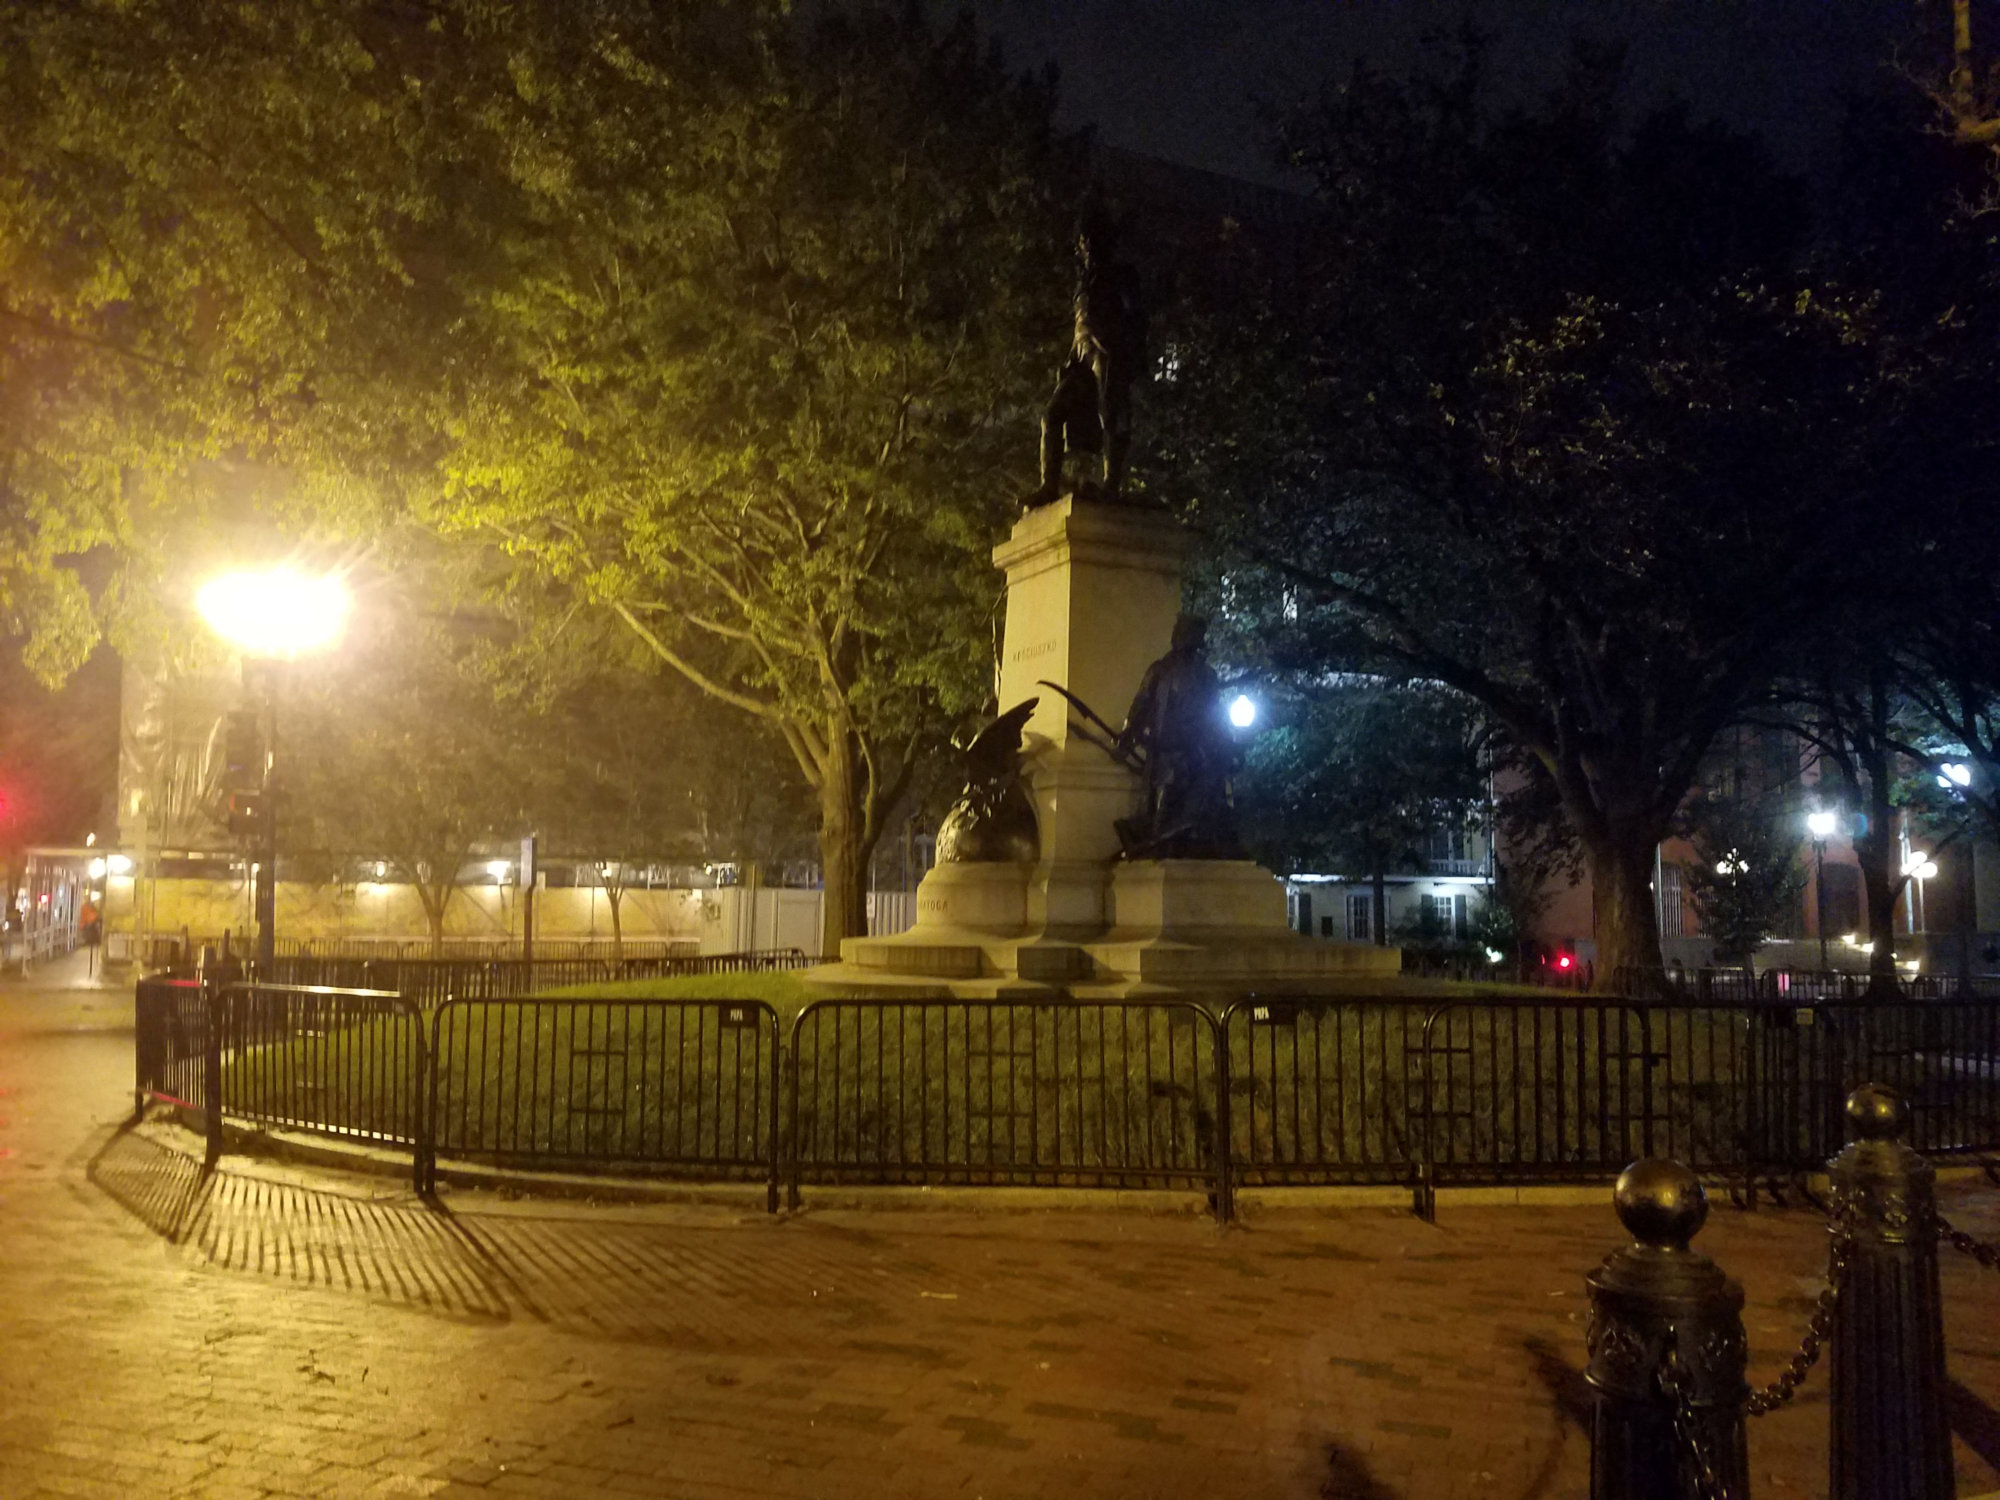 haunted dc lafayette square s ghosts wtop. Black Bedroom Furniture Sets. Home Design Ideas